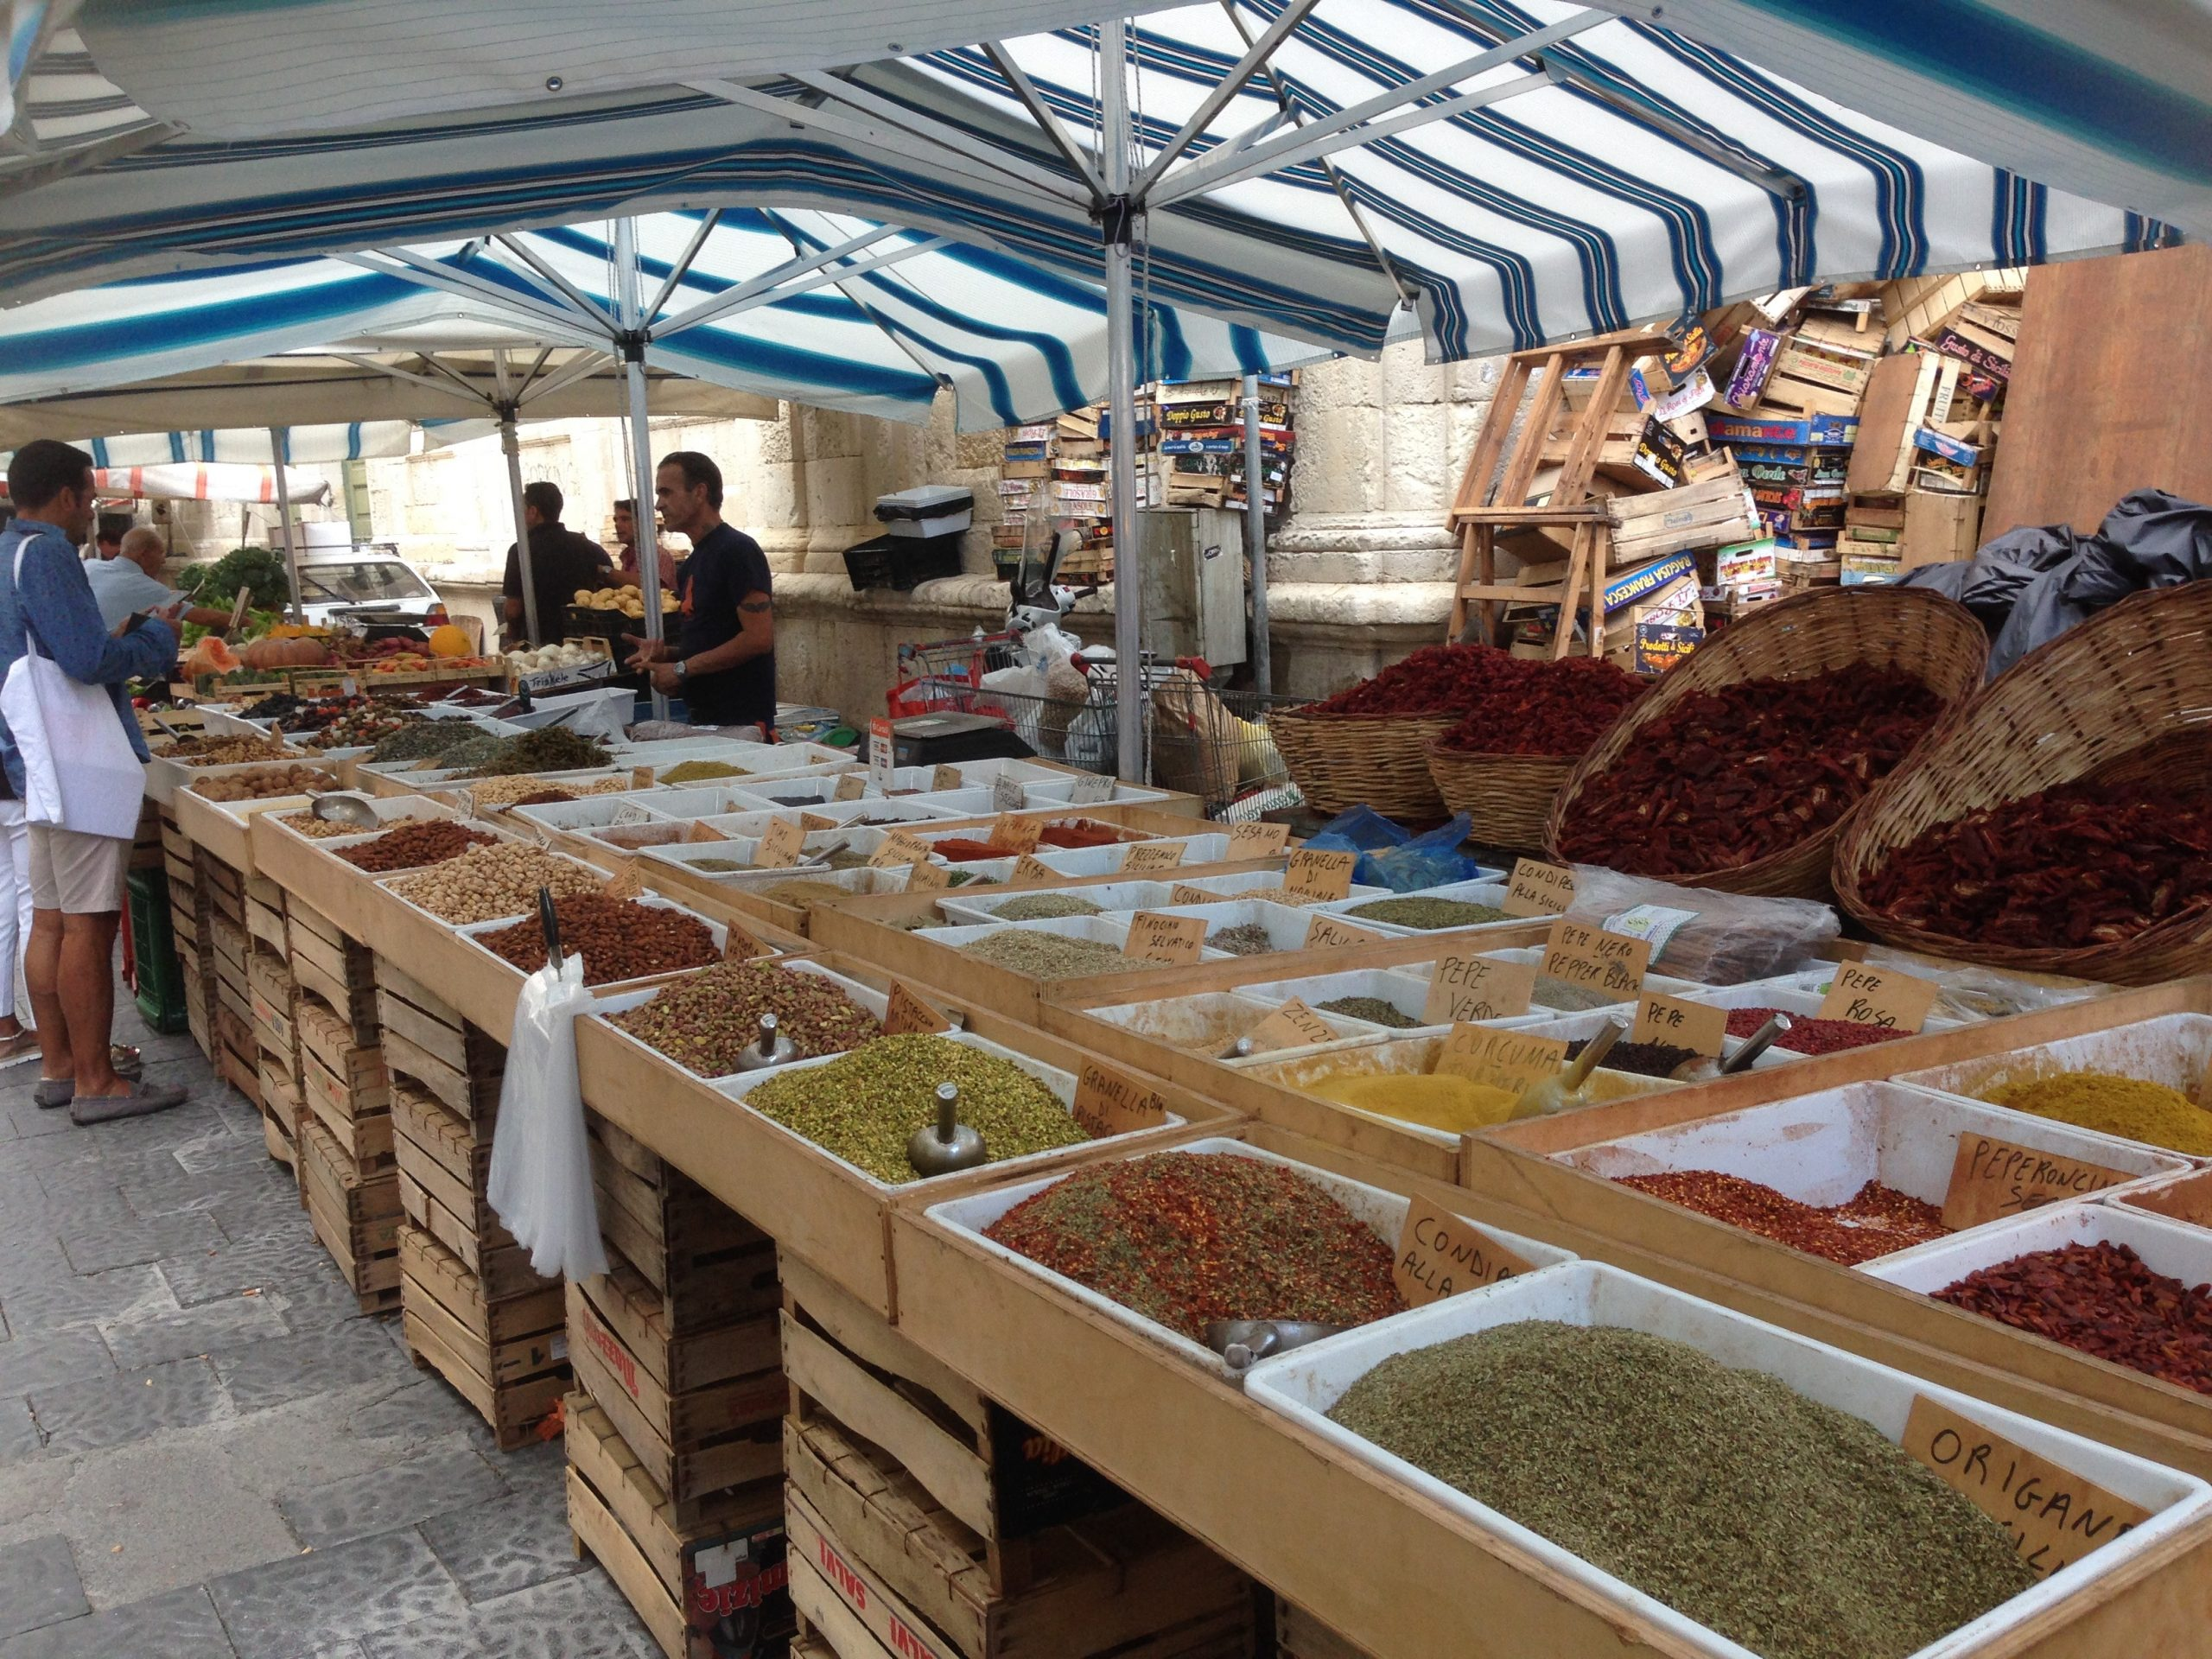 Life Coach working and living in Sicliy - food markets in Sicily.